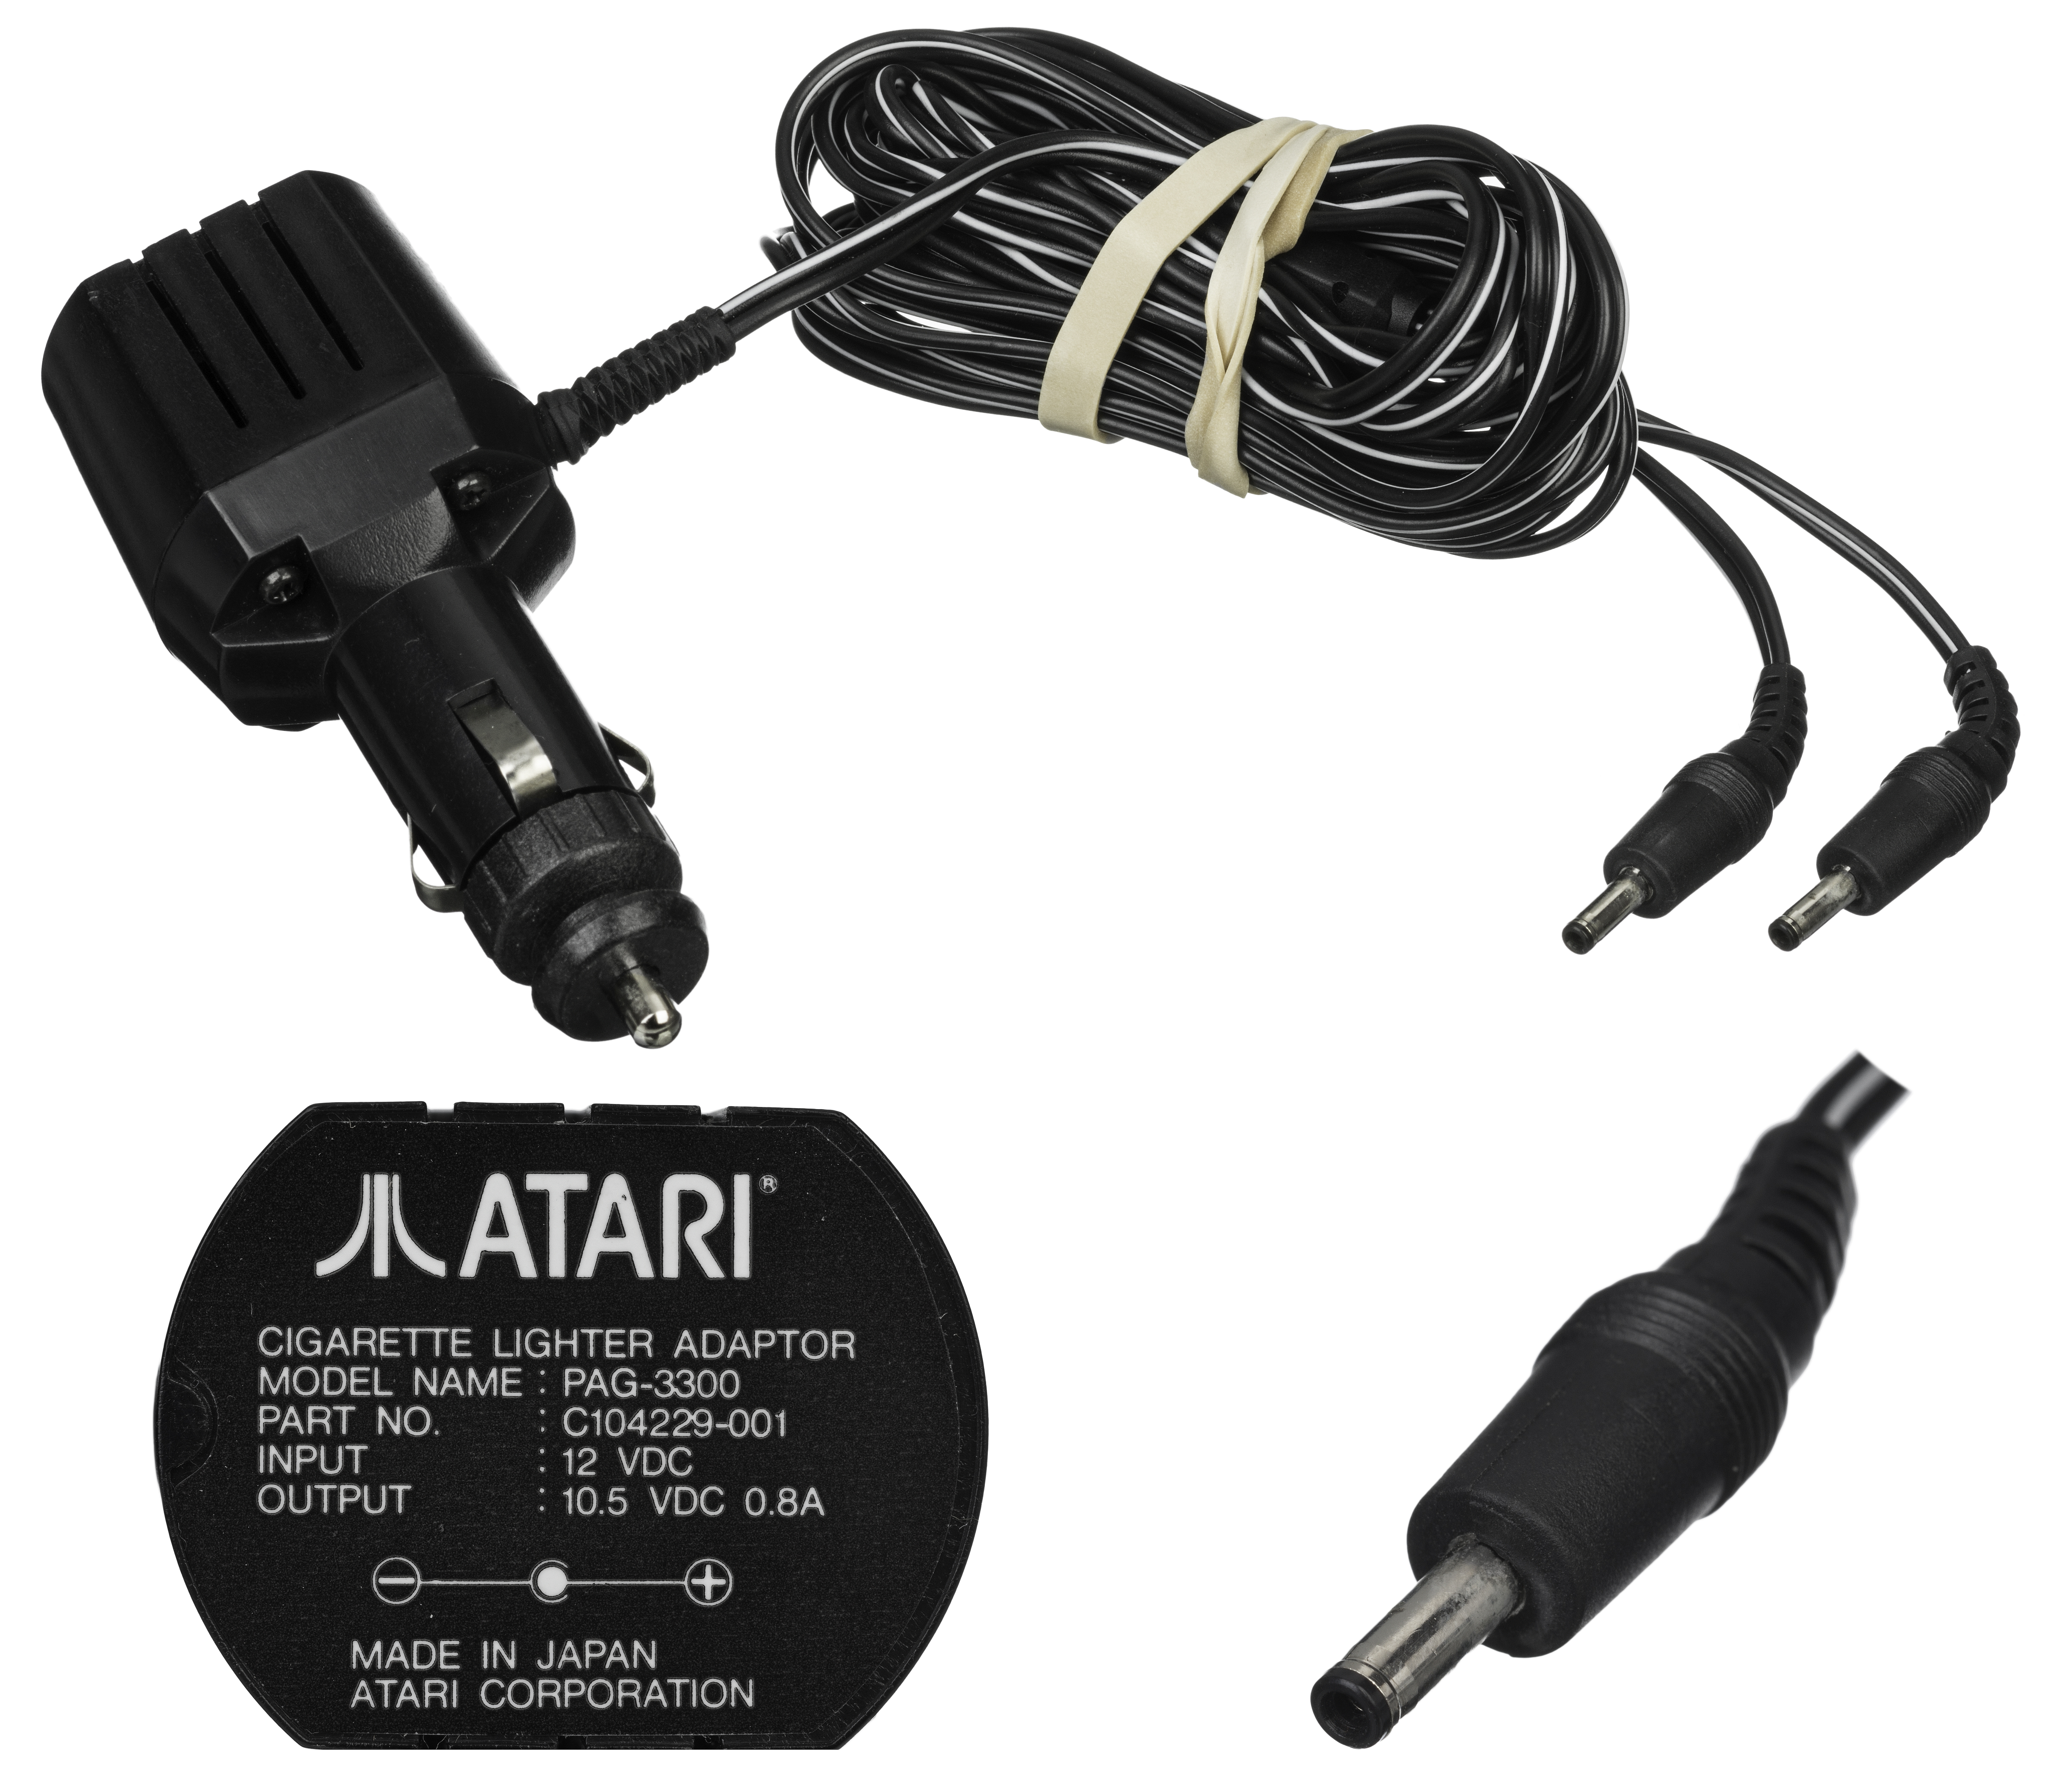 Information -=The official cigarette lighter power adapter for the Atari Lynx game console. -Source=Own work